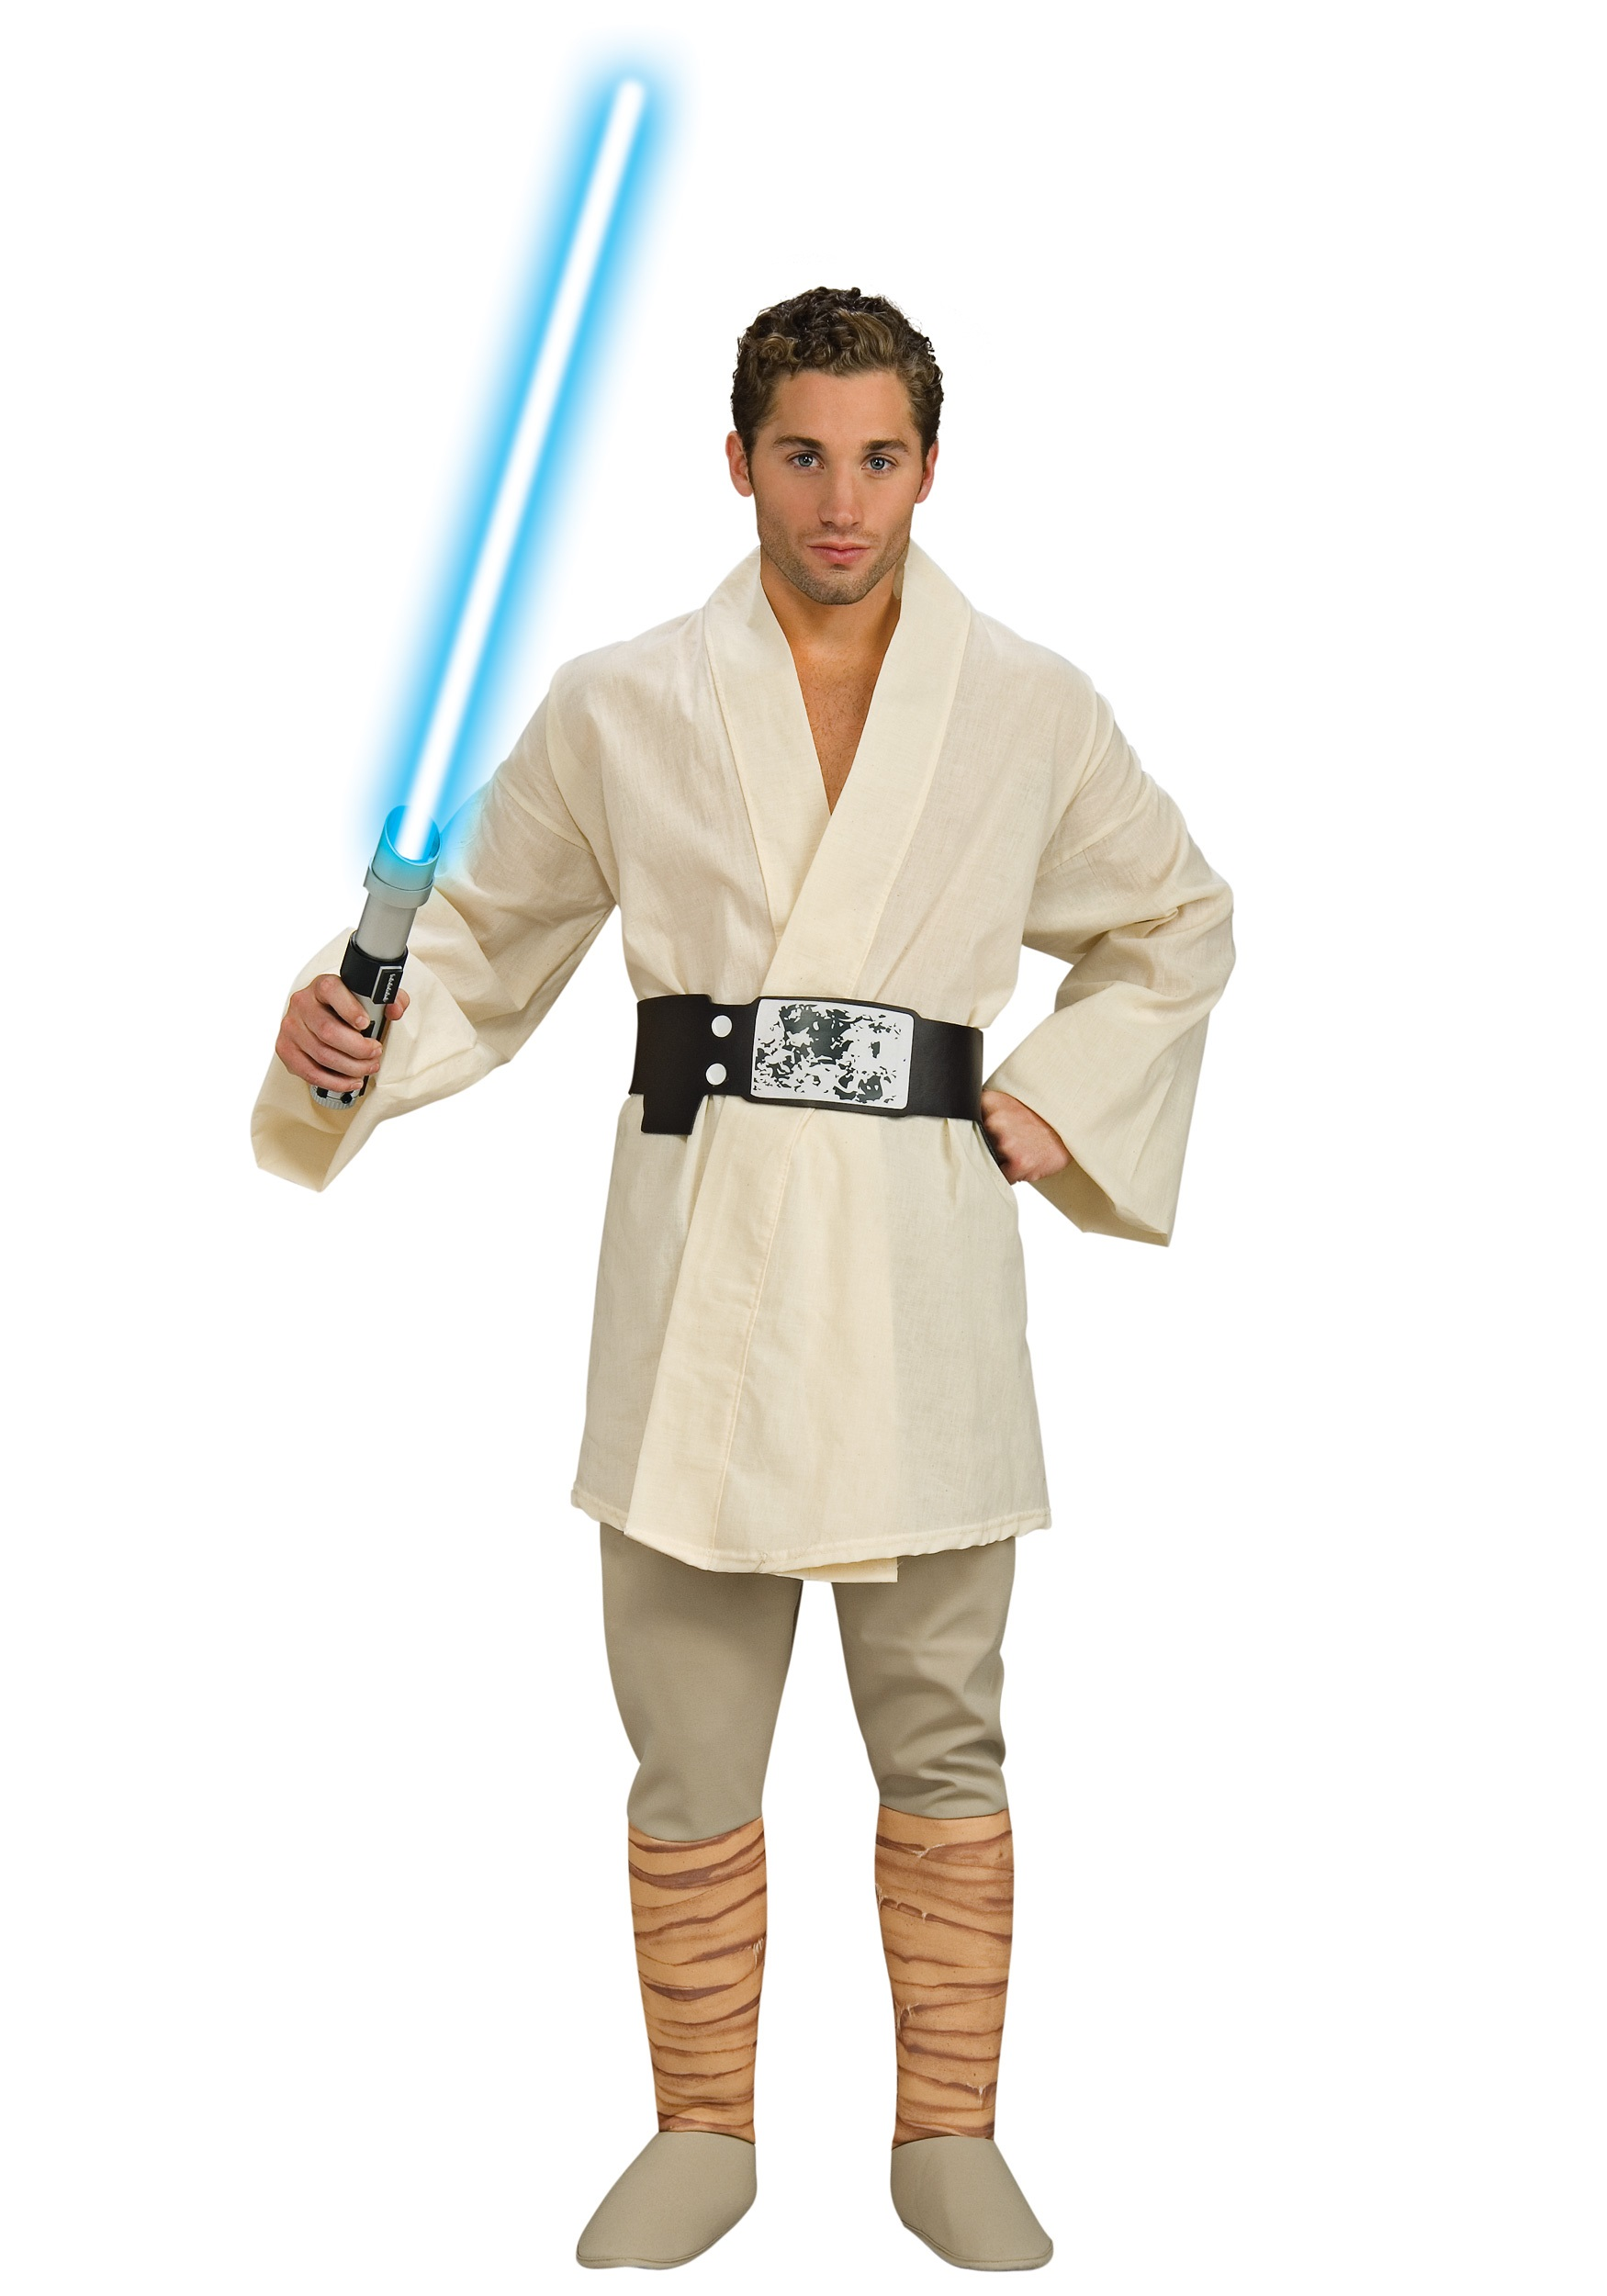 Star Wars Halloween Costumes.Deluxe Luke Skywalker Costume